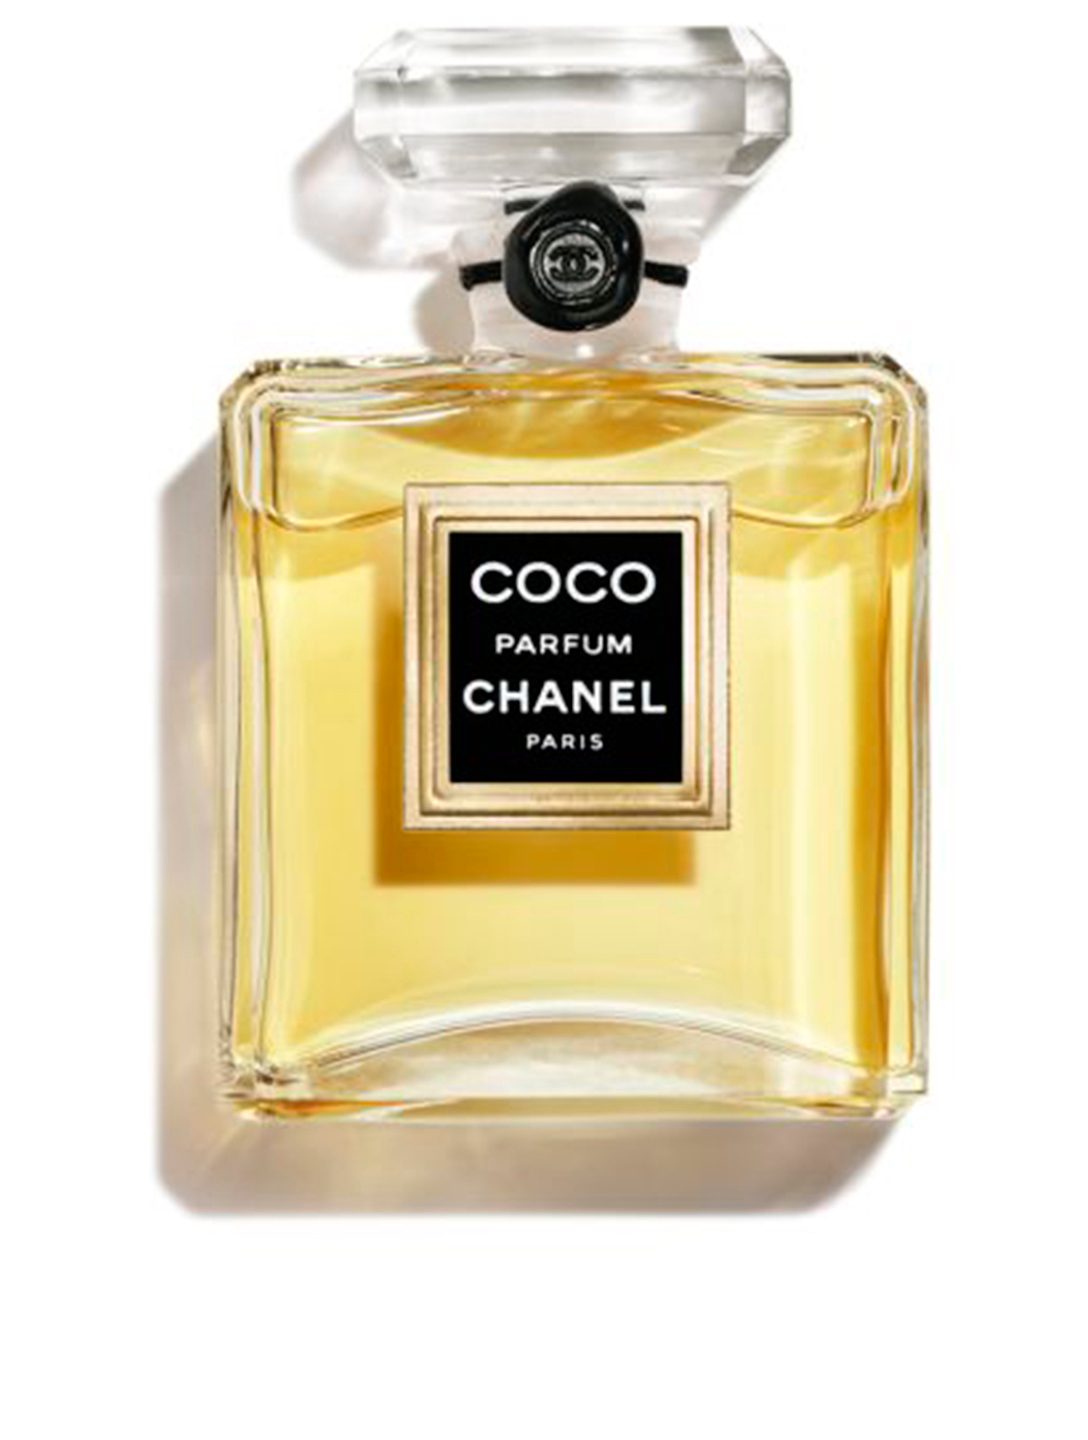 CHANEL Parfum Bottle CHANEL